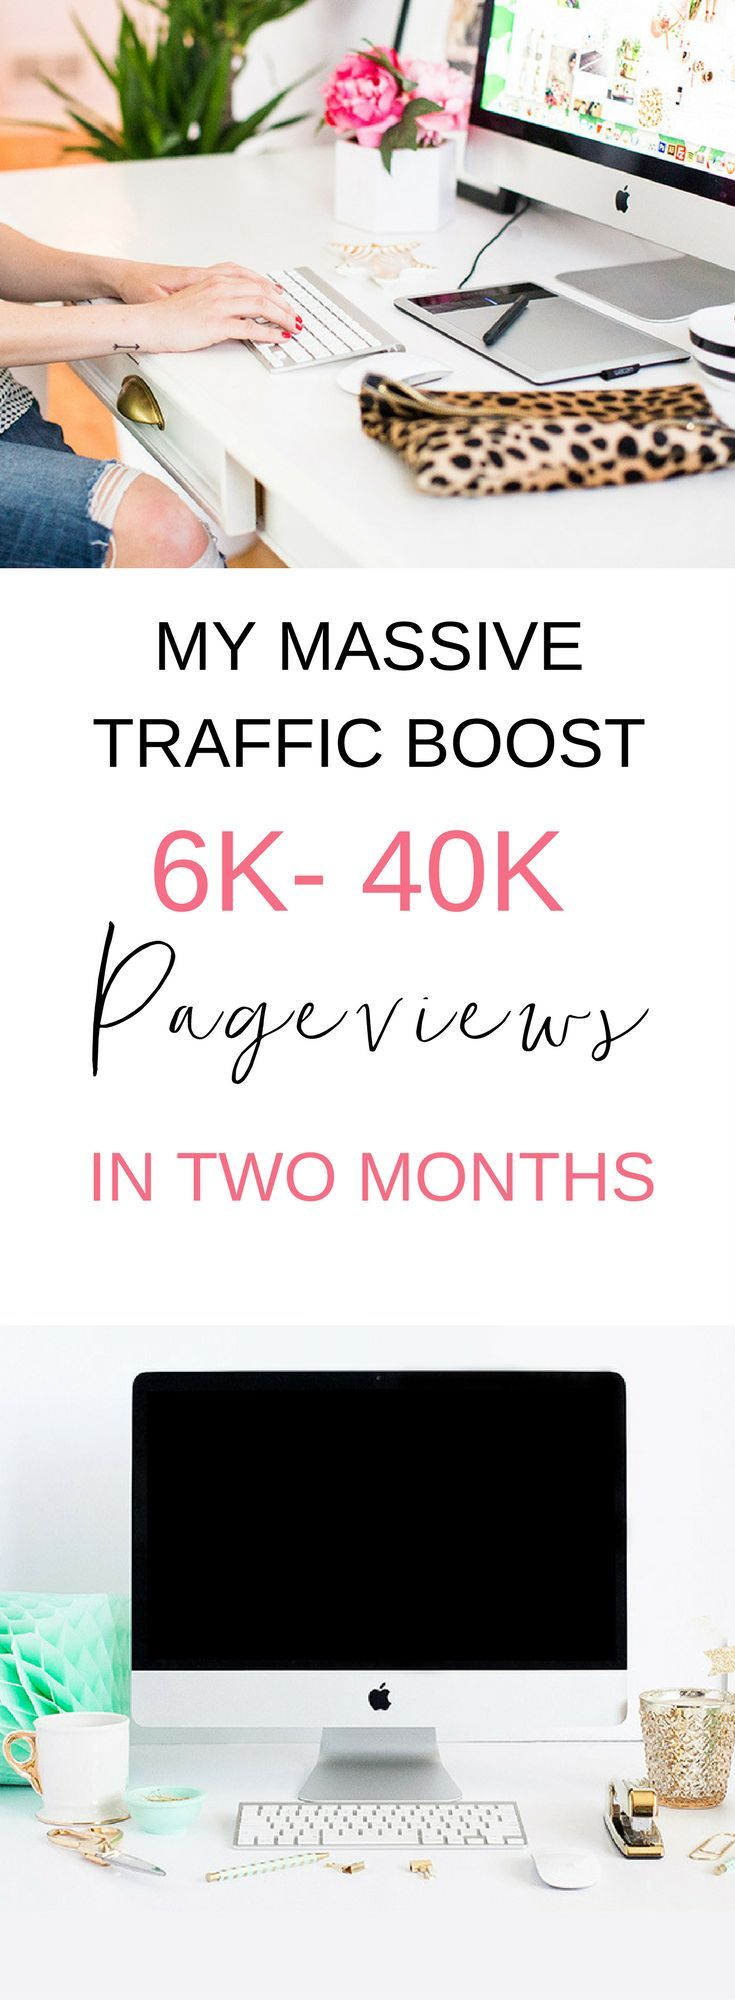 Increasing my traffic from 6k to 40k didn't seem possible to me. I remember when I was at just 20 people a day. It can really happen, and here's what helped me!